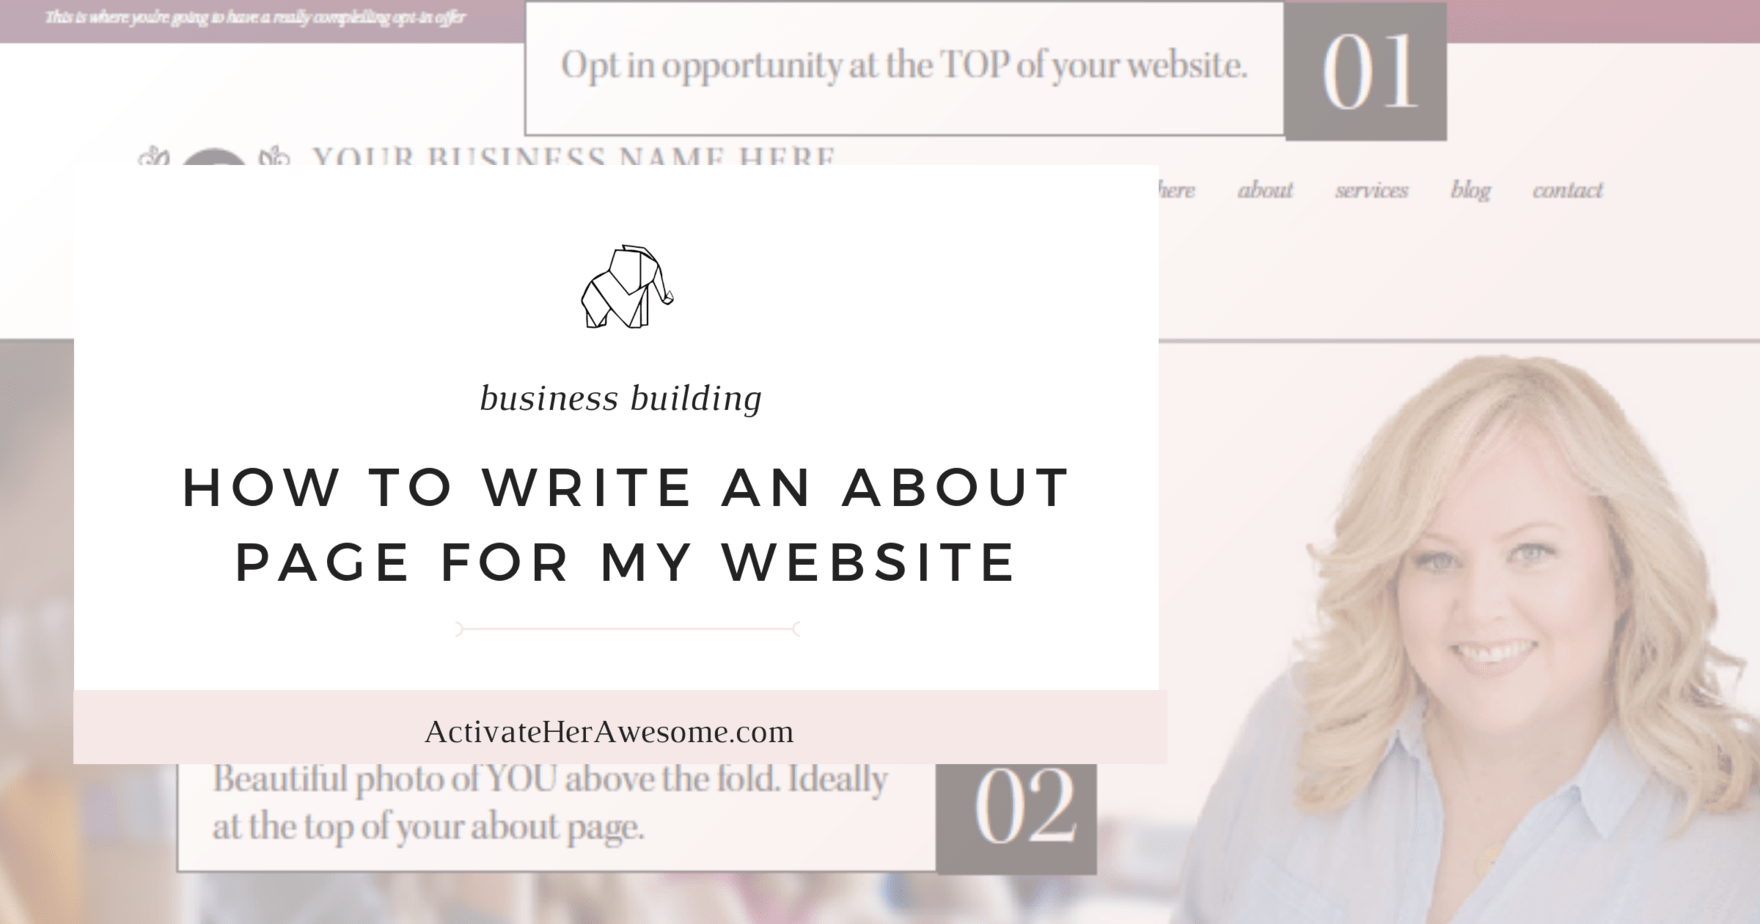 HOW TO WRITE AN ABOUT PAGE FOR MY WEBSITE_ via Krista Smith at ActivateHerAwesome.com